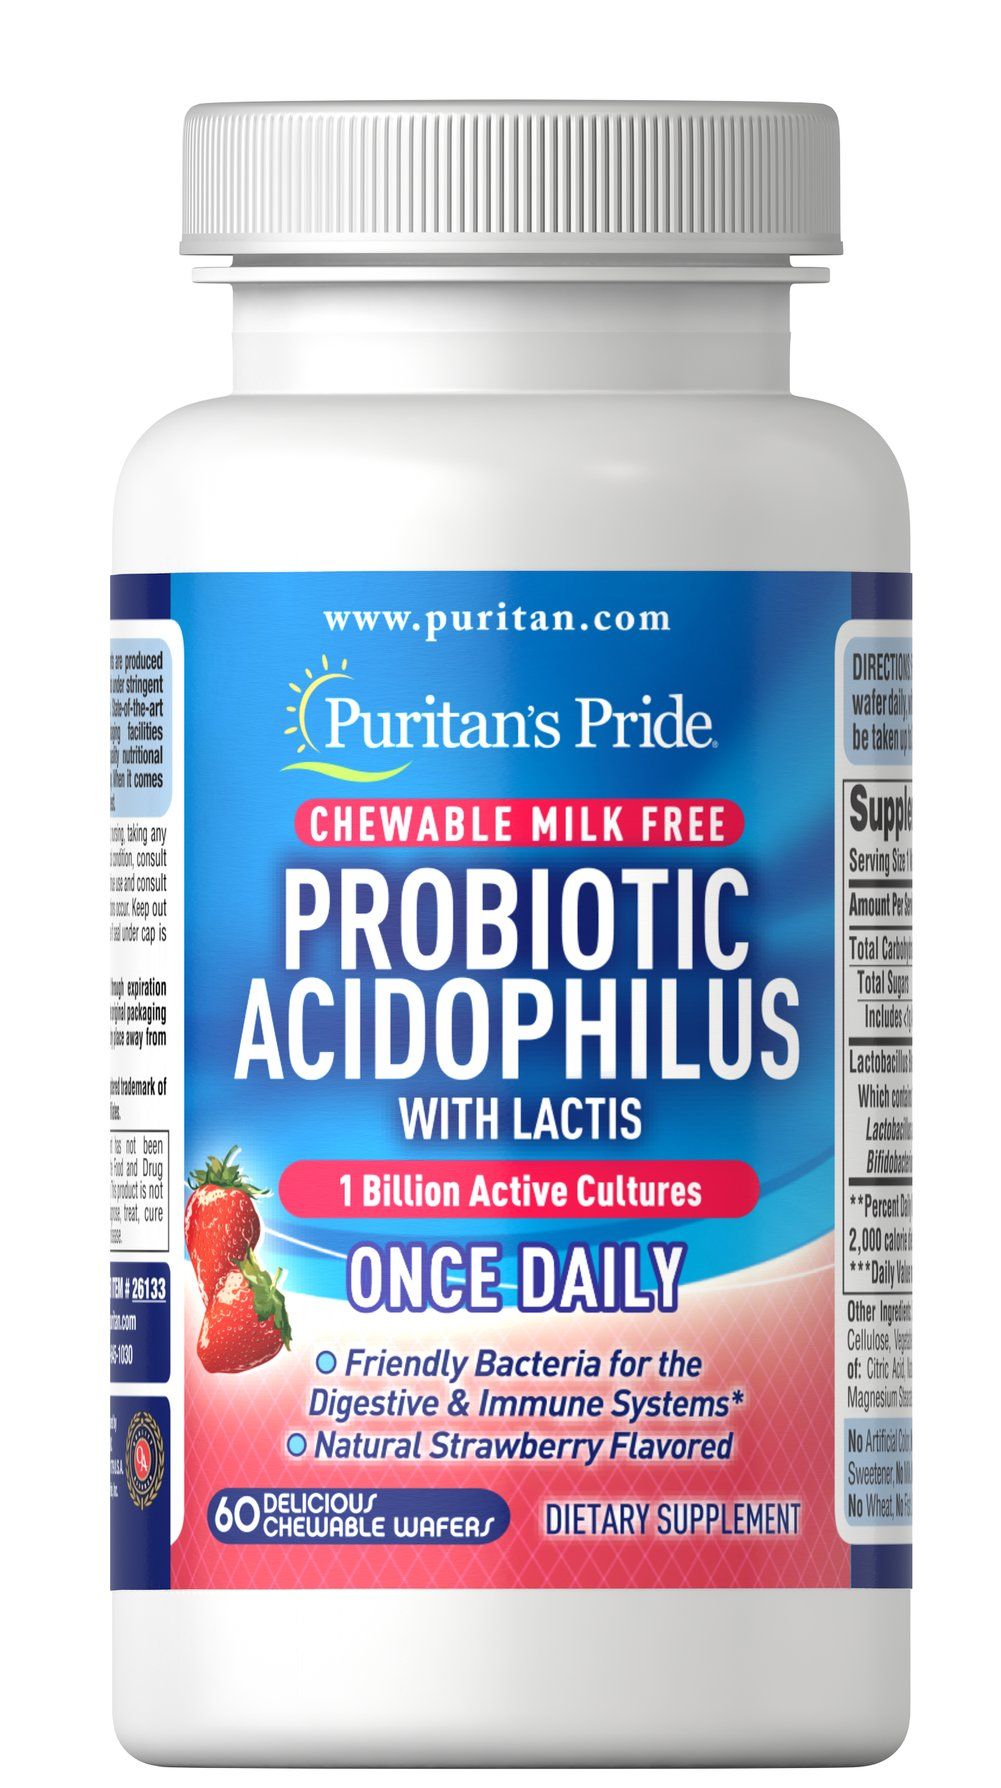 Chewable Probiotic Acidophilus with Lactis